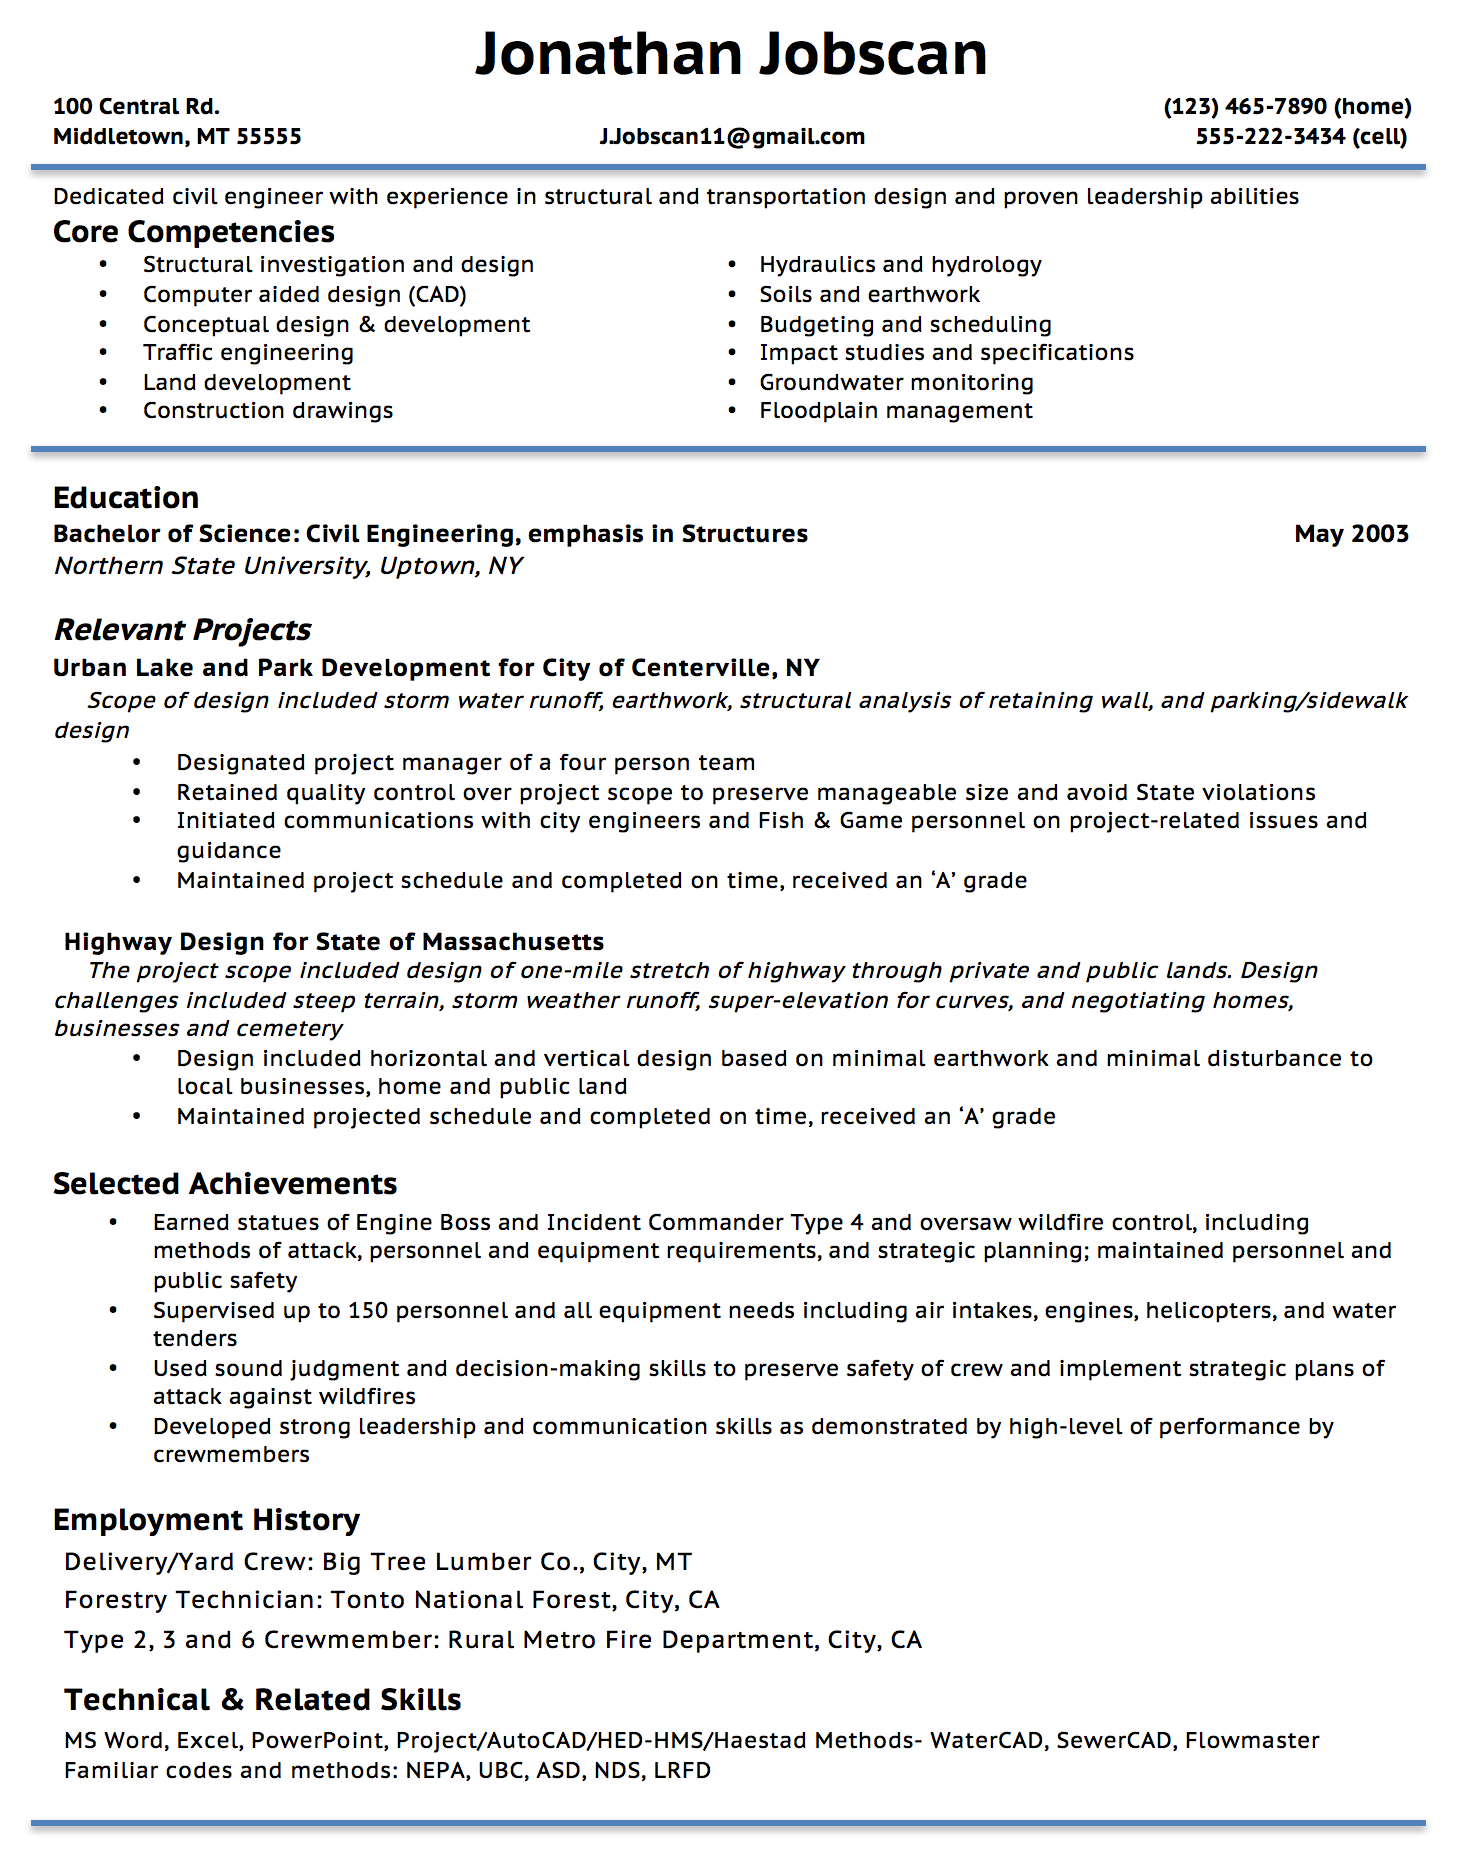 Functional Resume Example  How To Make Up A Resume